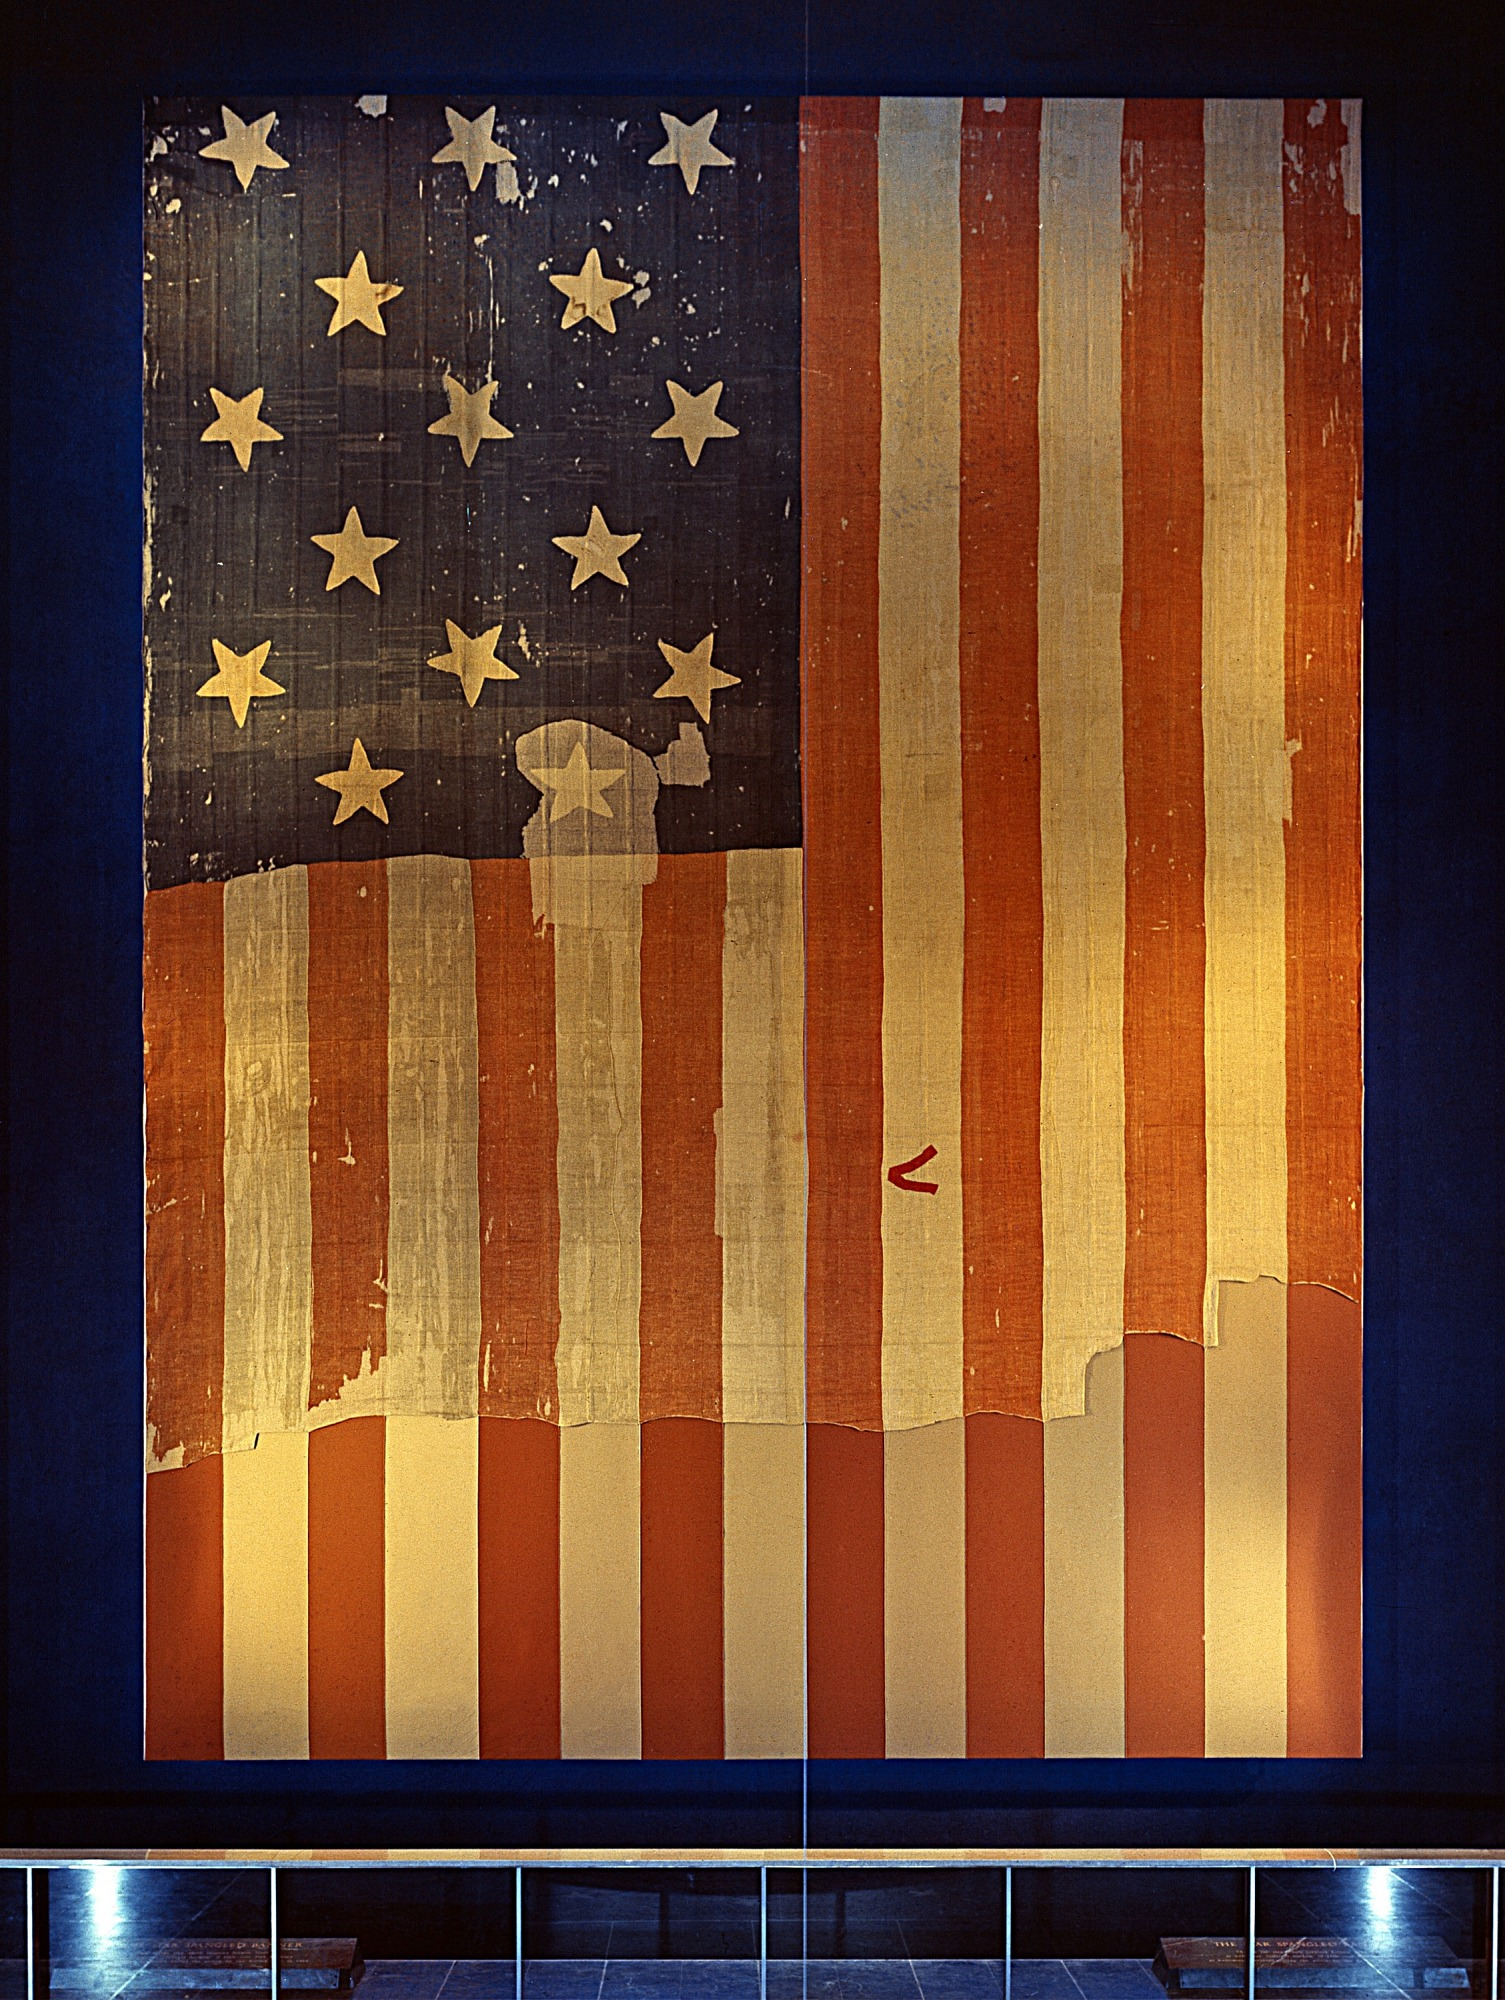 Star-Spangled Banner, NMAH, by Unknown, c. 1964, Smithsonian Archives - History Div, MAH-P6427.